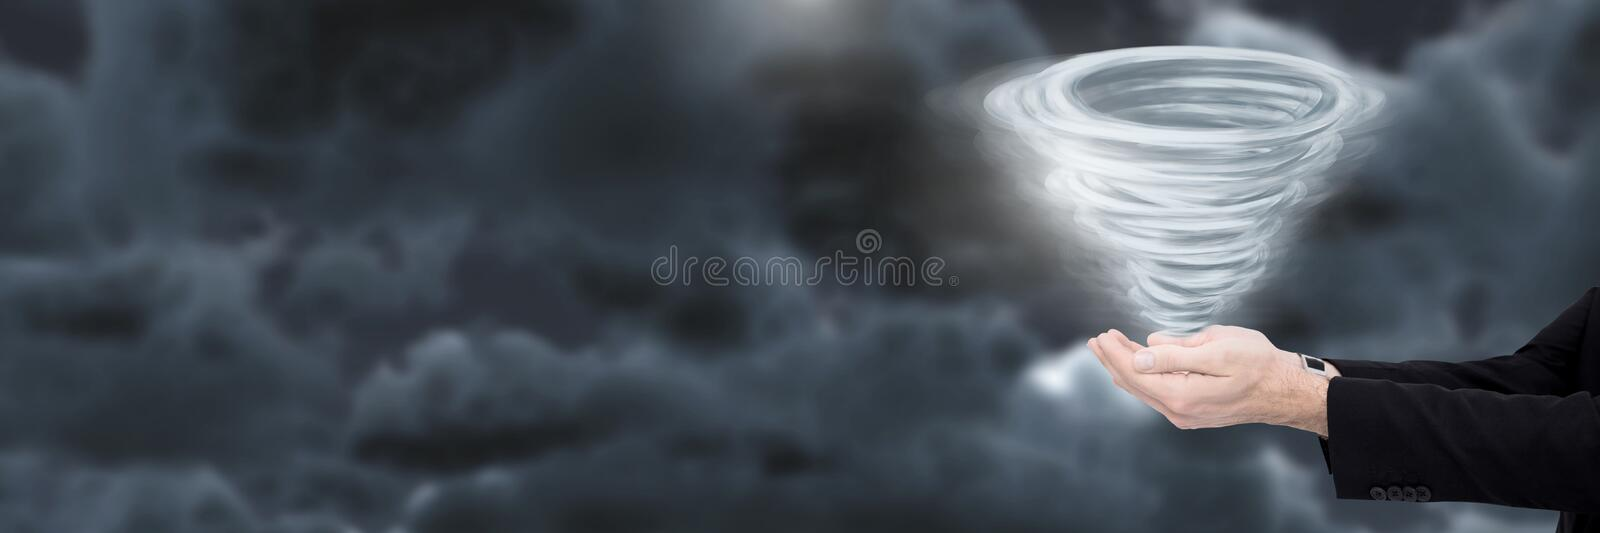 Tornado twister painted and dark sky with hands open stock image